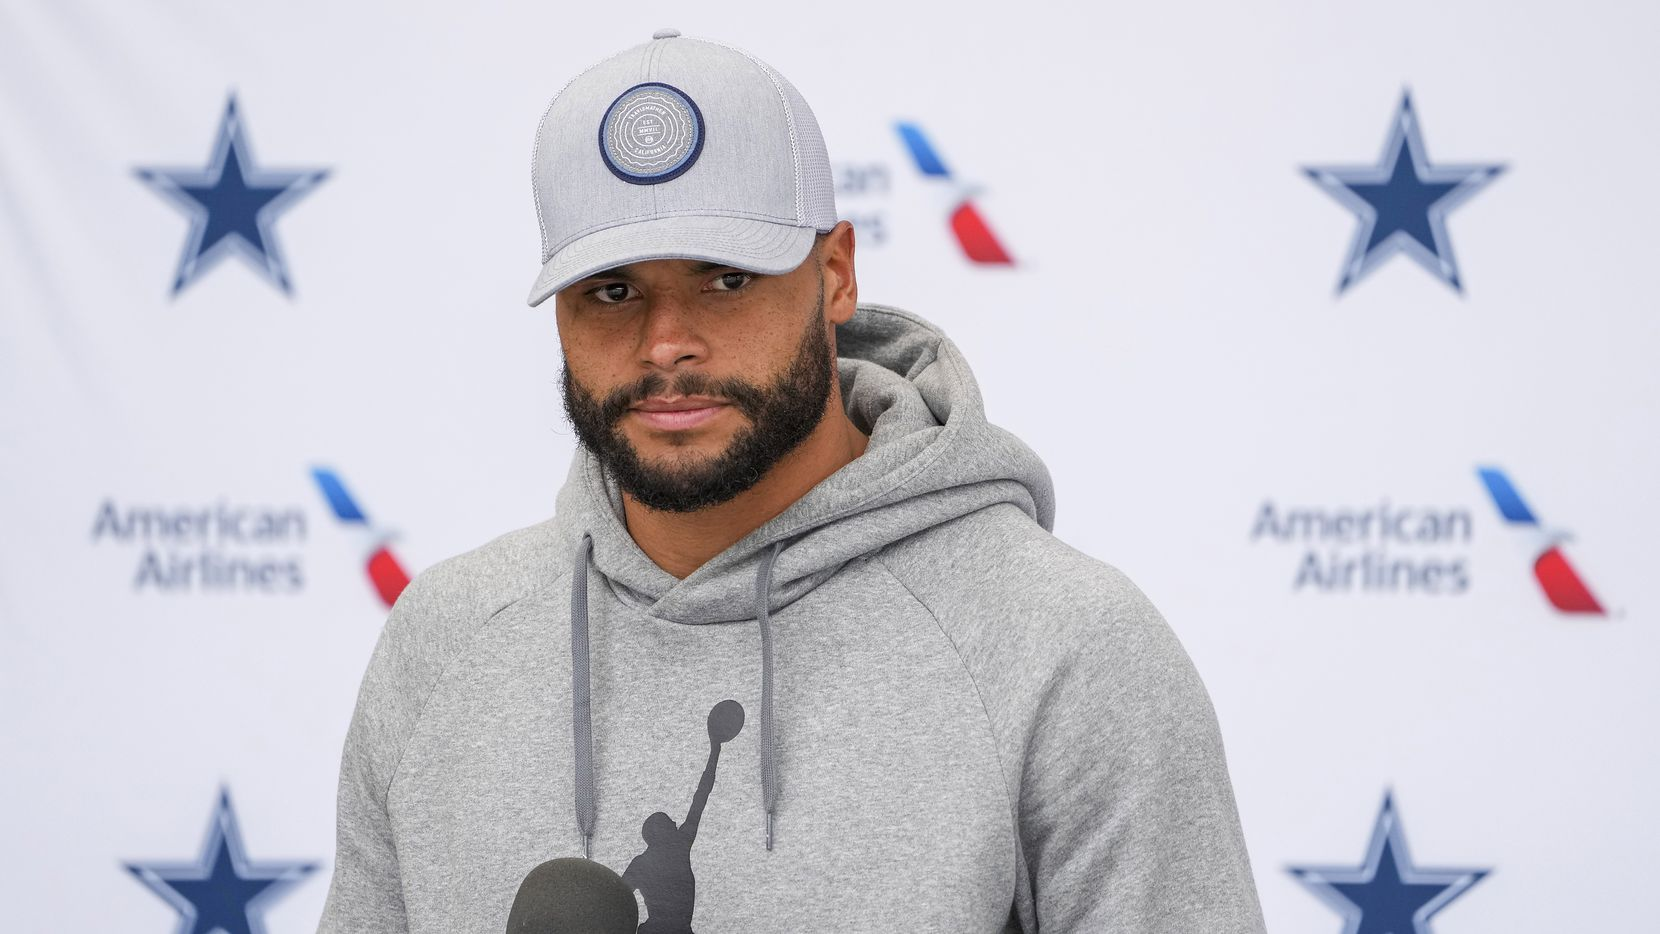 Dallas Cowboys quarterback Dak Prescott addresses reporters following a practice at training camp on Wednesday, Aug. 11, 2021, in Oxnard, Calif. (Smiley N. Pool/The Dallas Morning News)